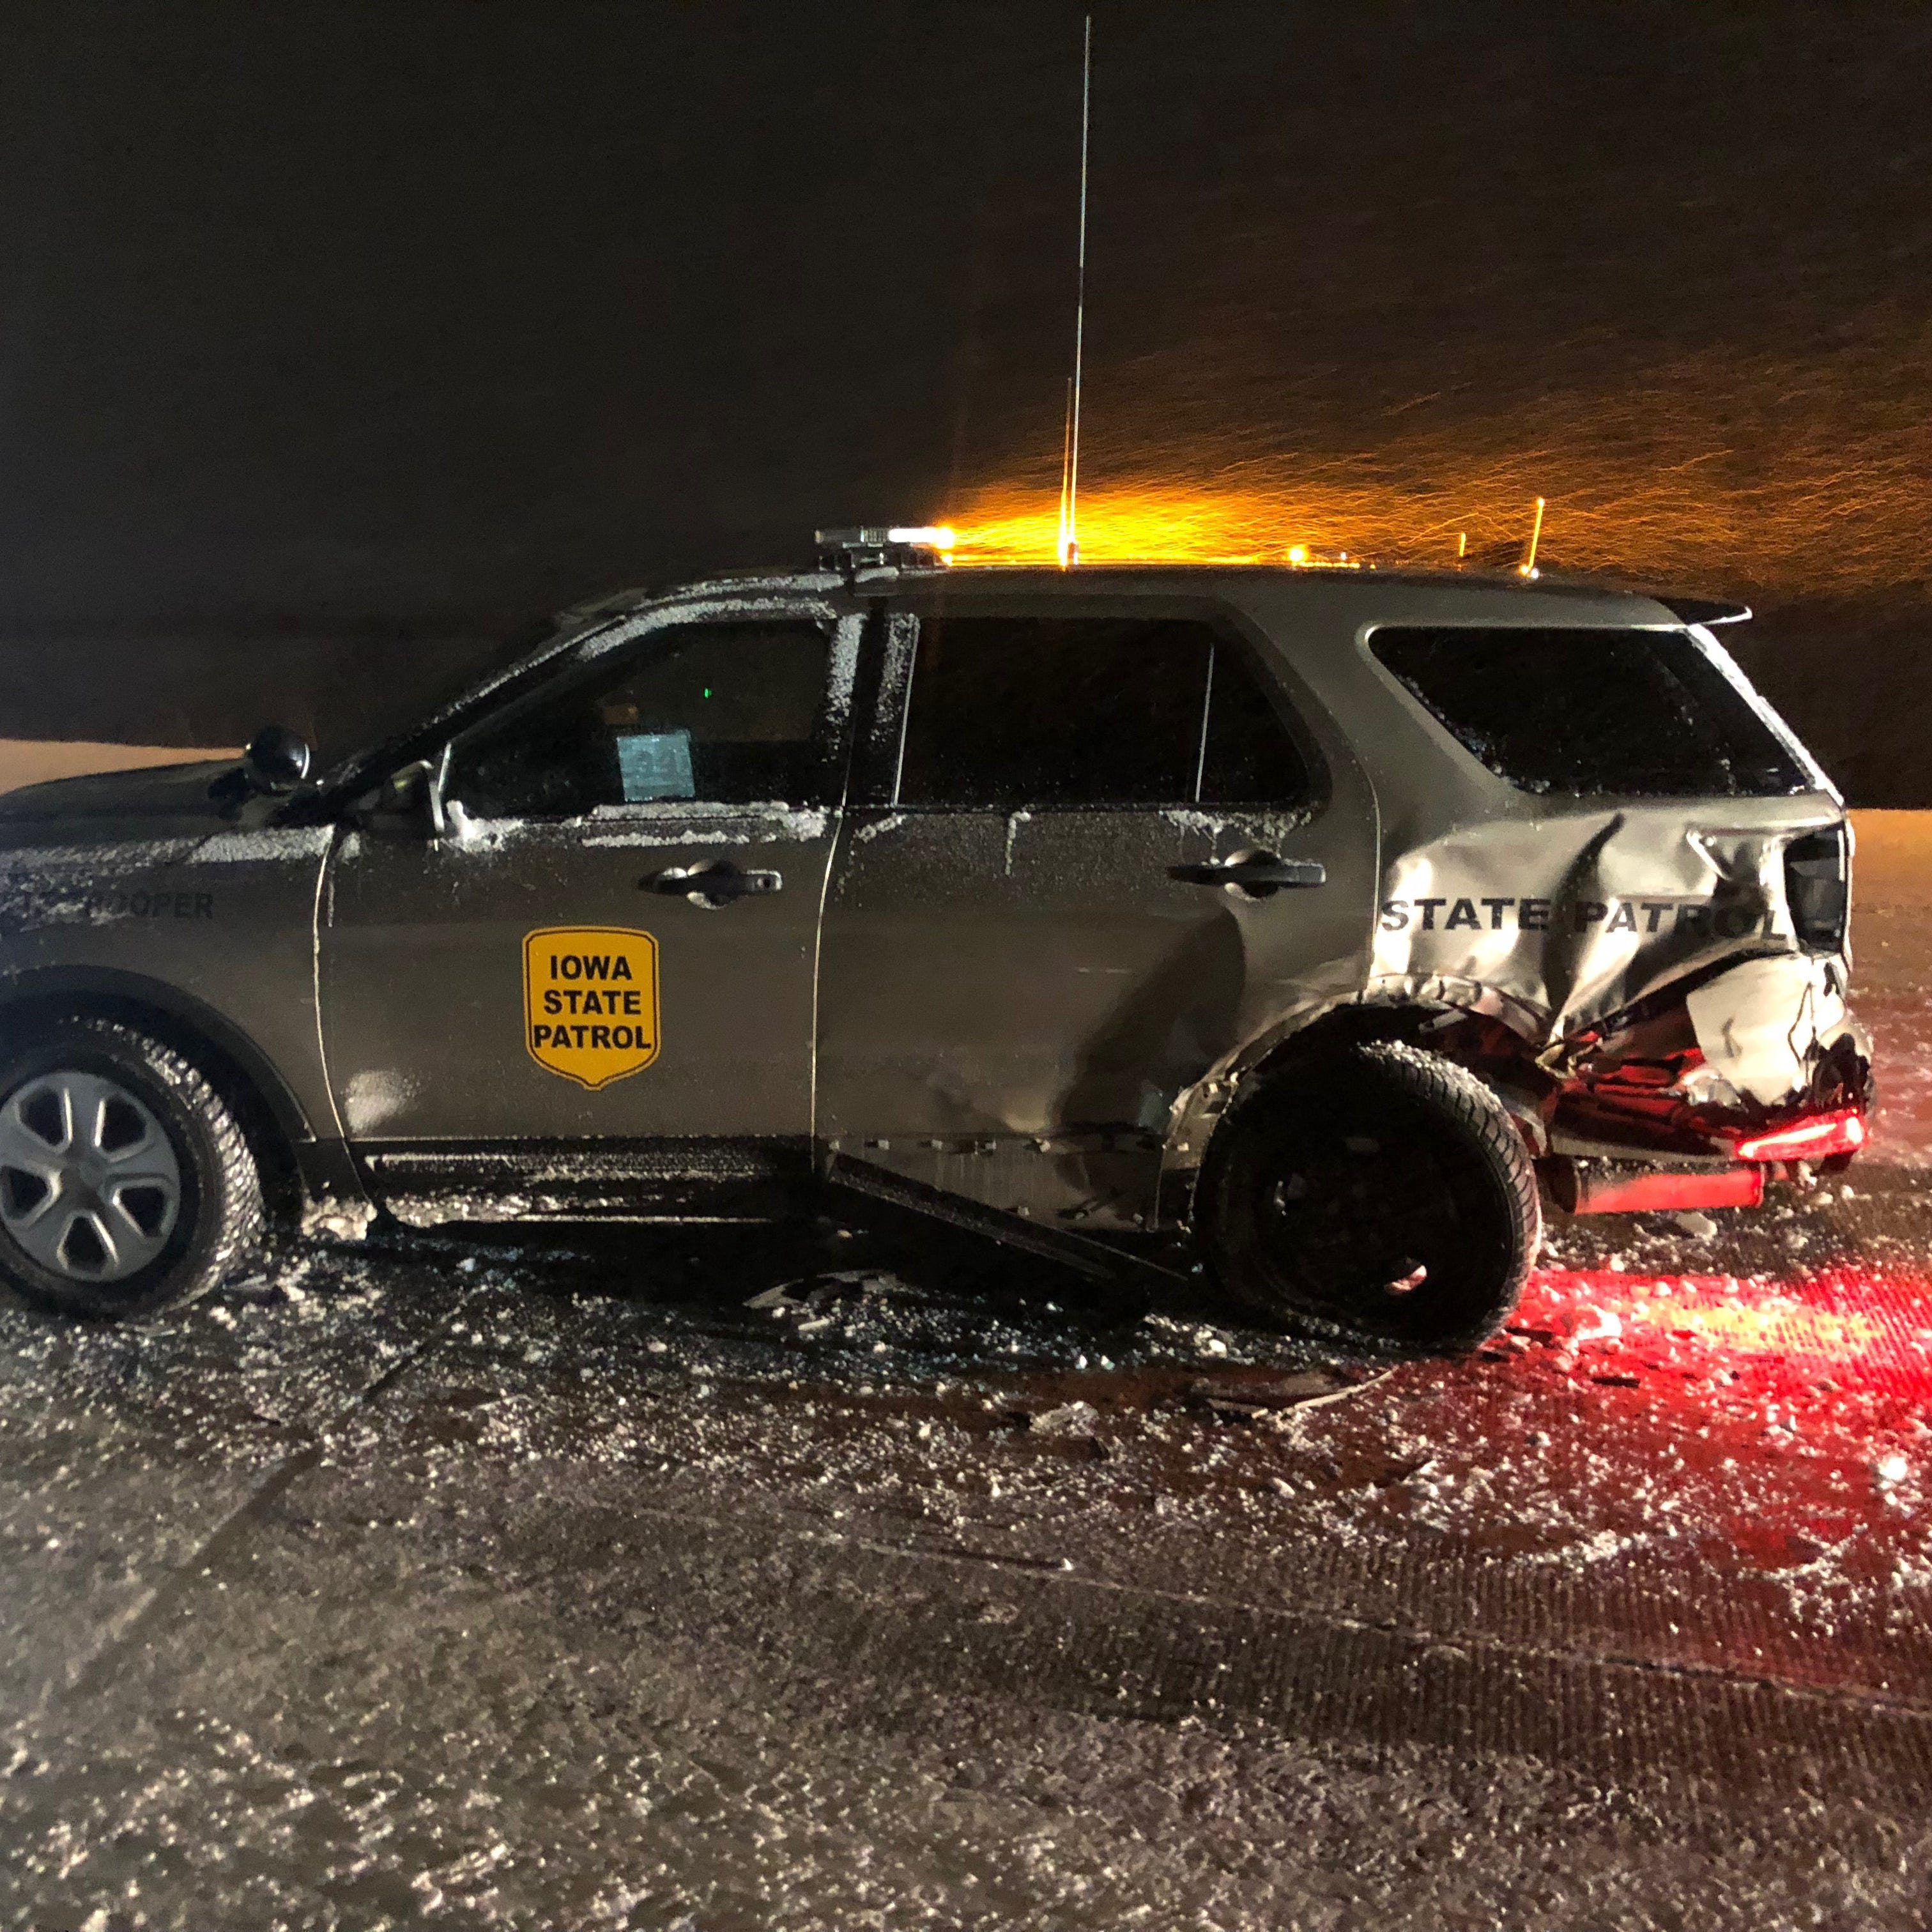 Semitrailer slams into Iowa State Patrol car on Interstate 80, nearly striking trooper